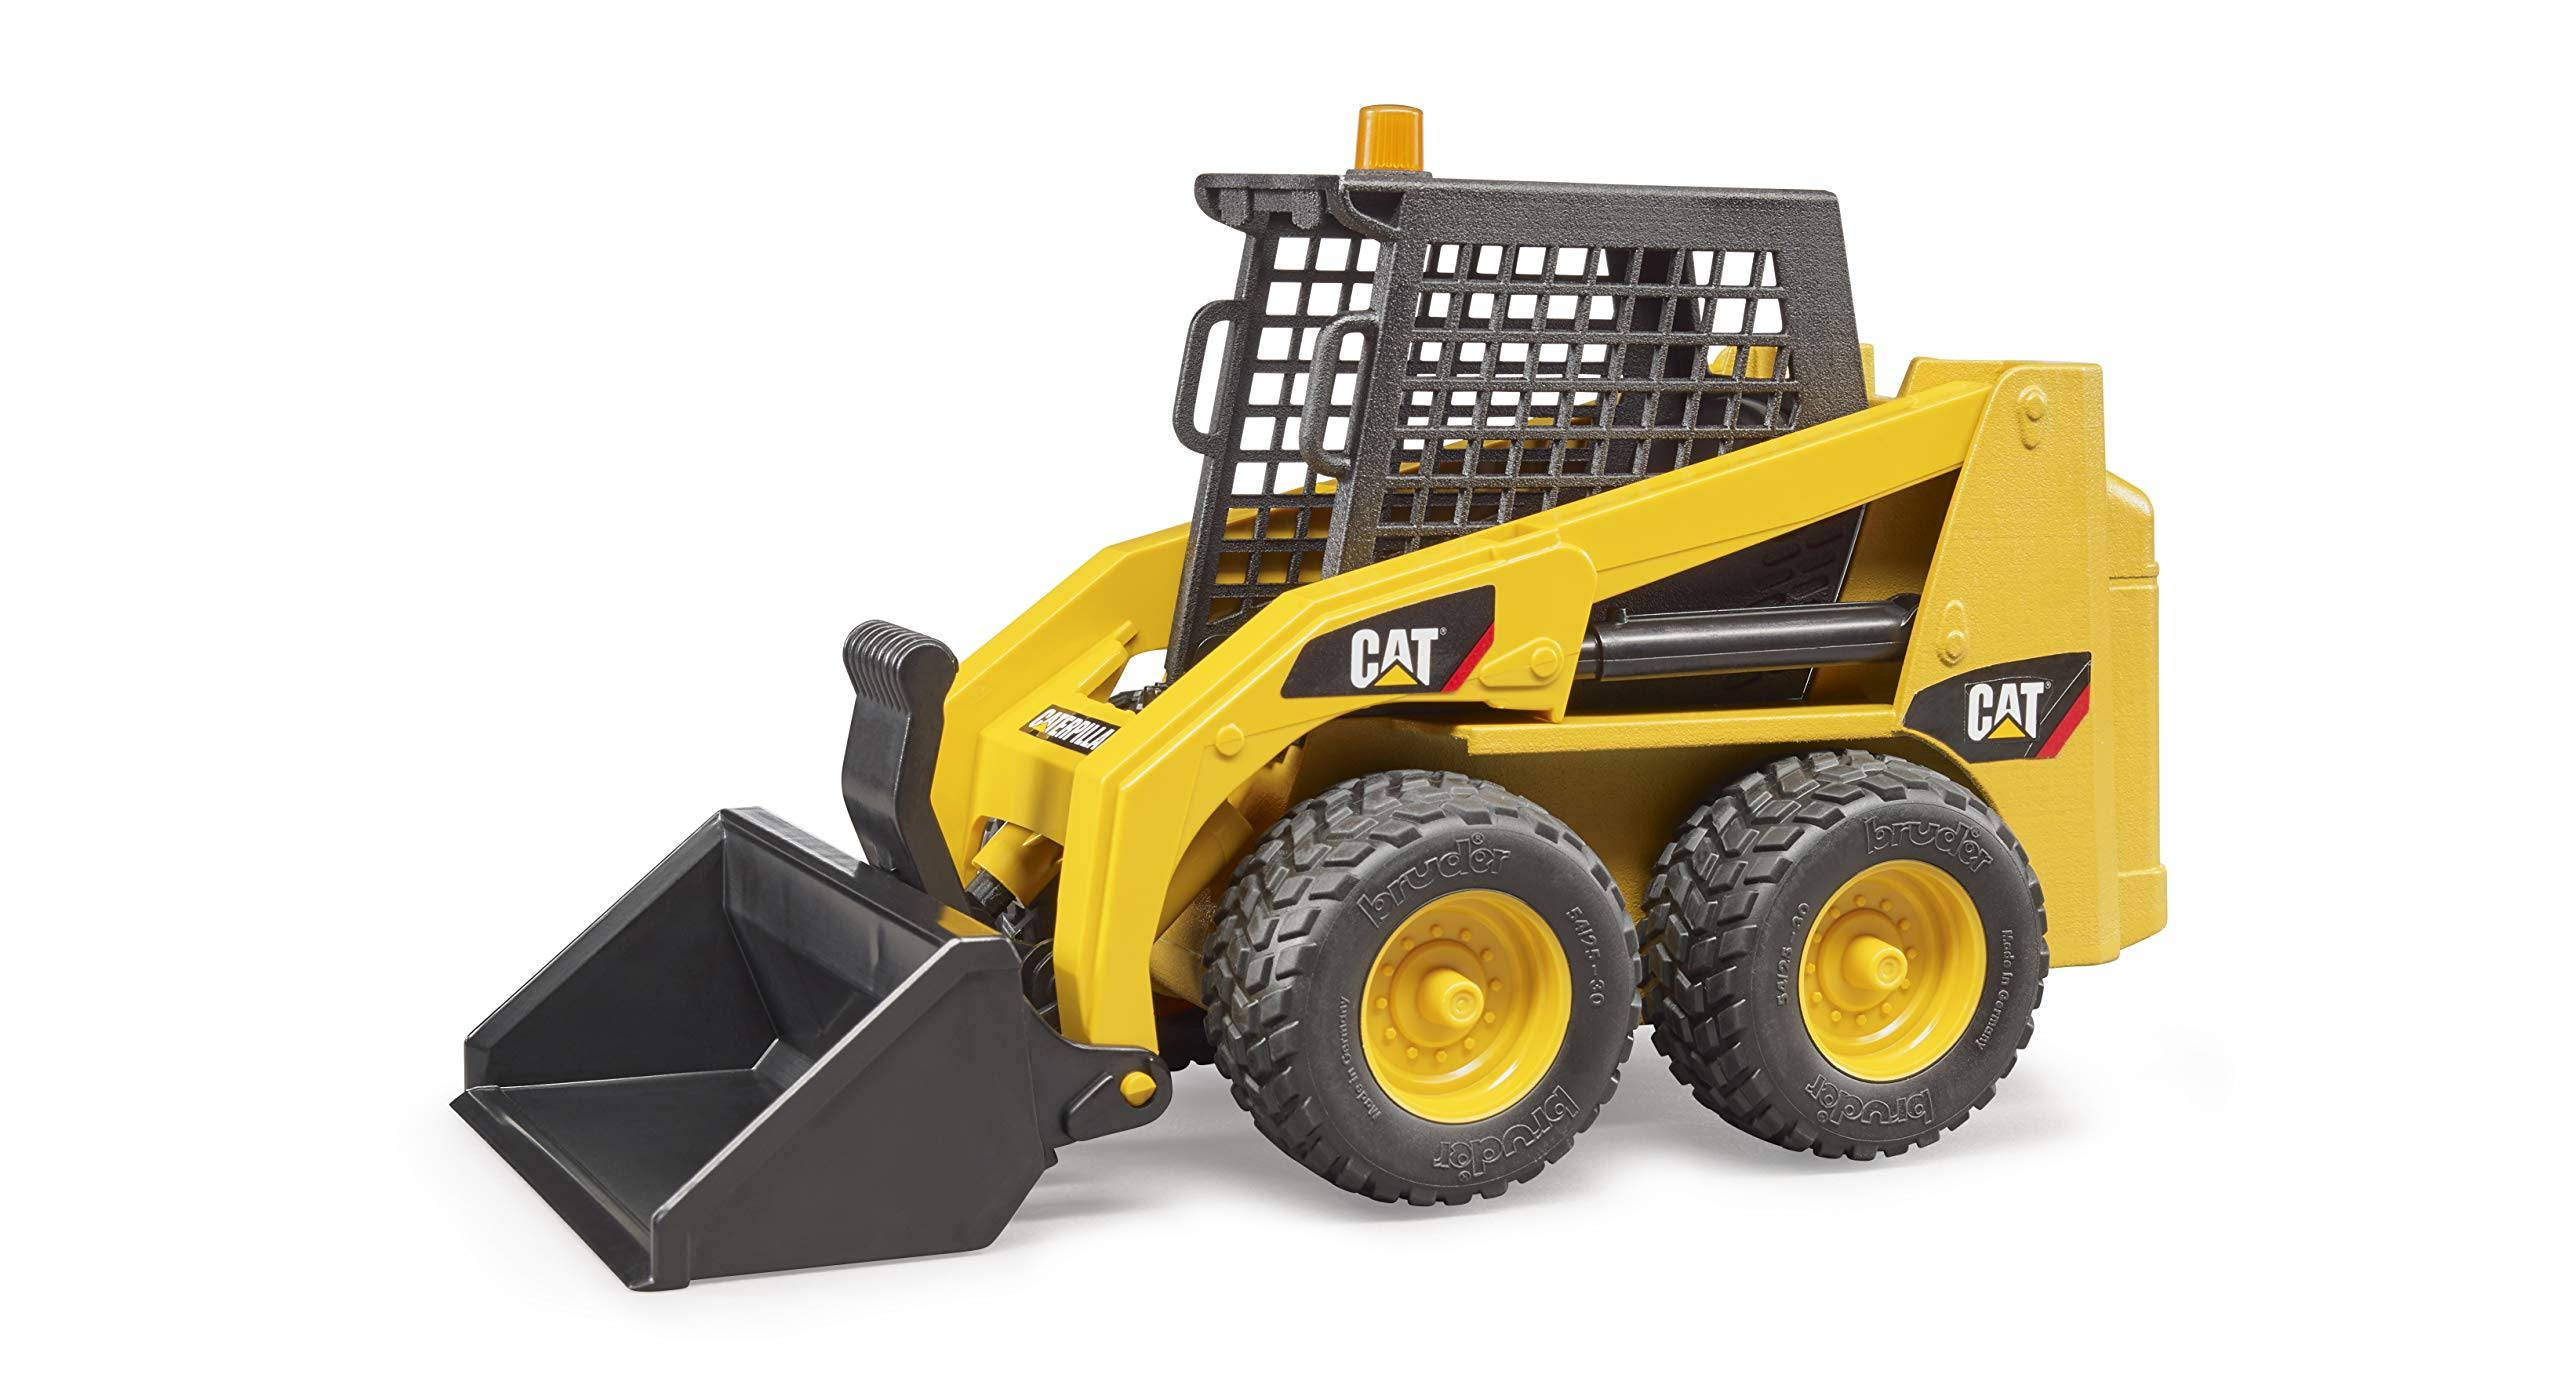 Cat Skid Steer Loader Toy